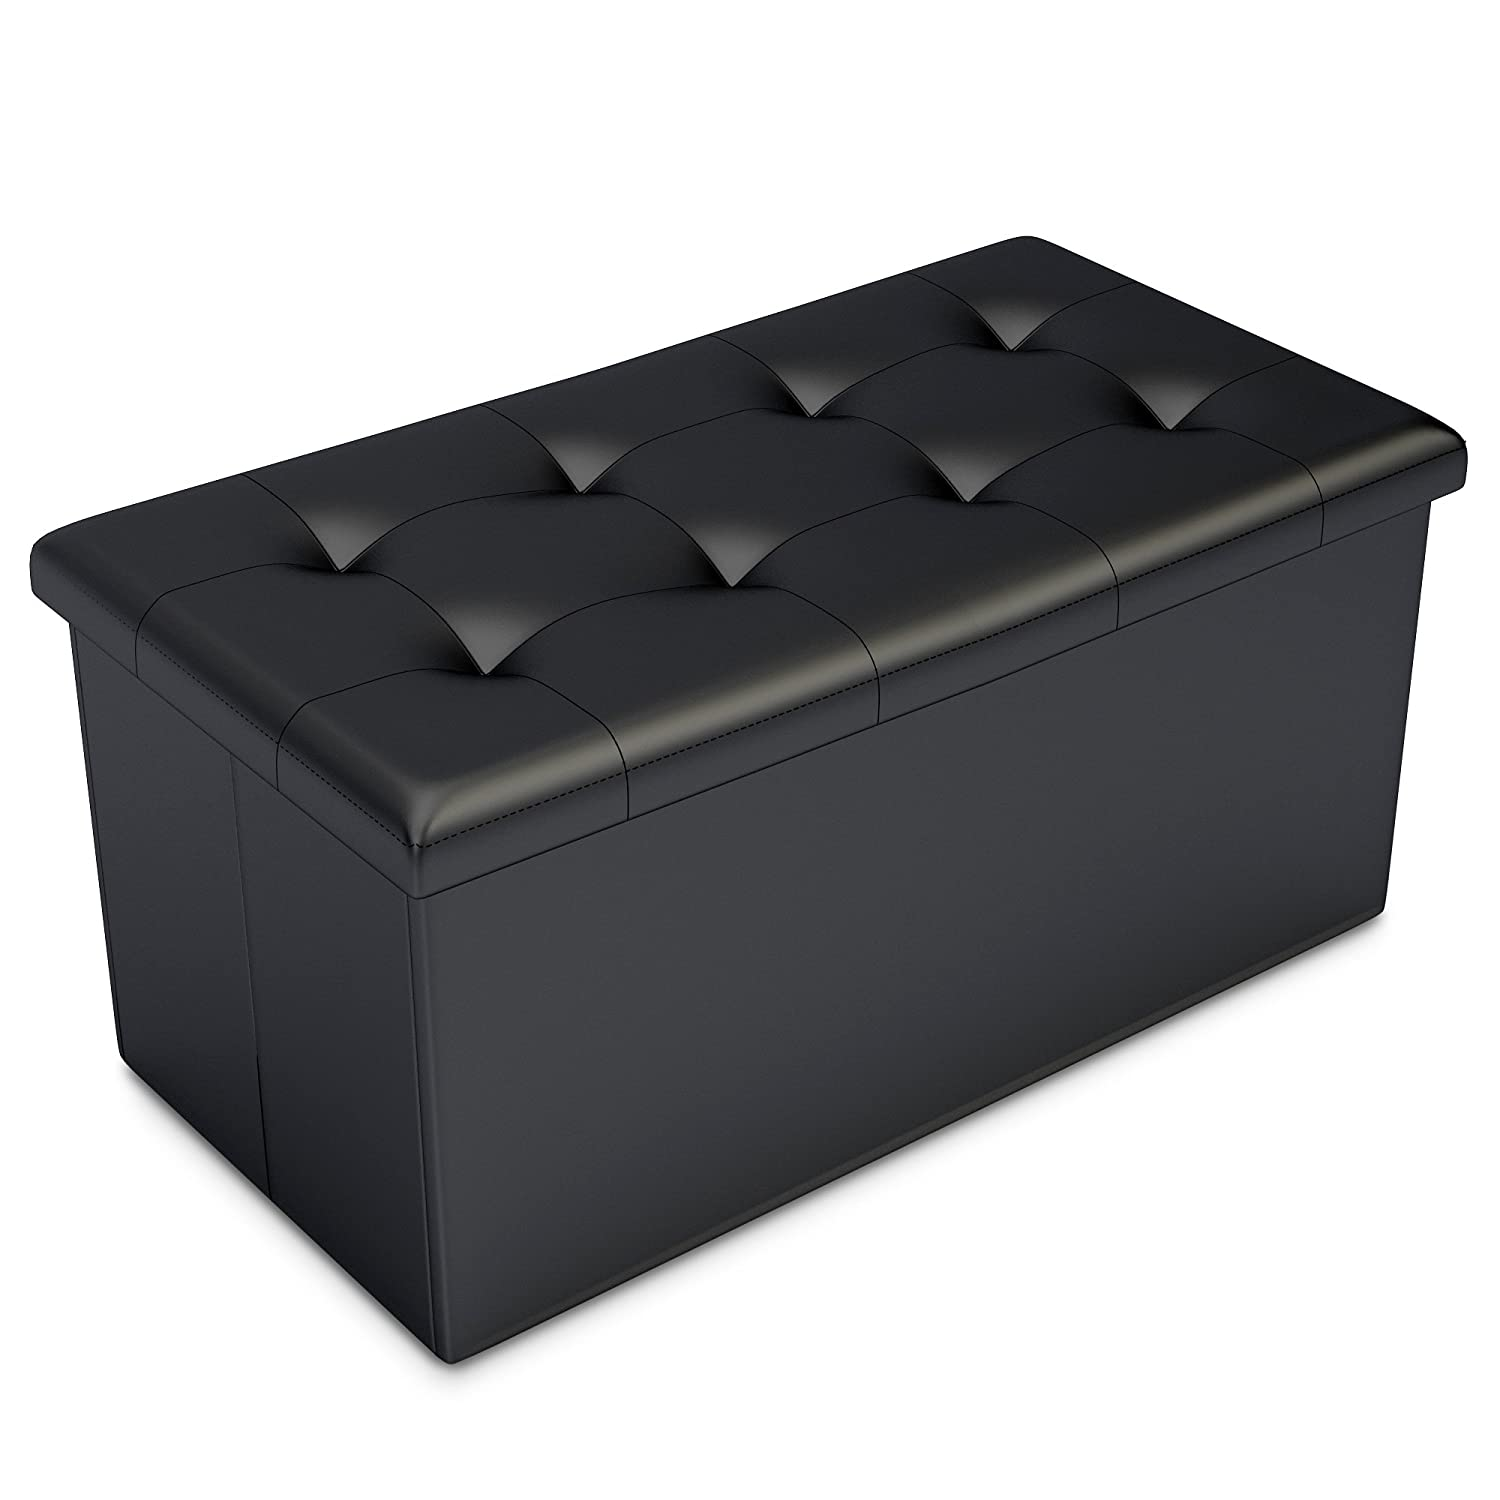 Black Faux Leather Ottoman Storage Bench -Great as a Double Seat or a  Footstool, Coffee Table, Kids Toy Chest Trunk, Pouffe Living Room Furniture  - Space ... - Storage Ottoman Amazon.com